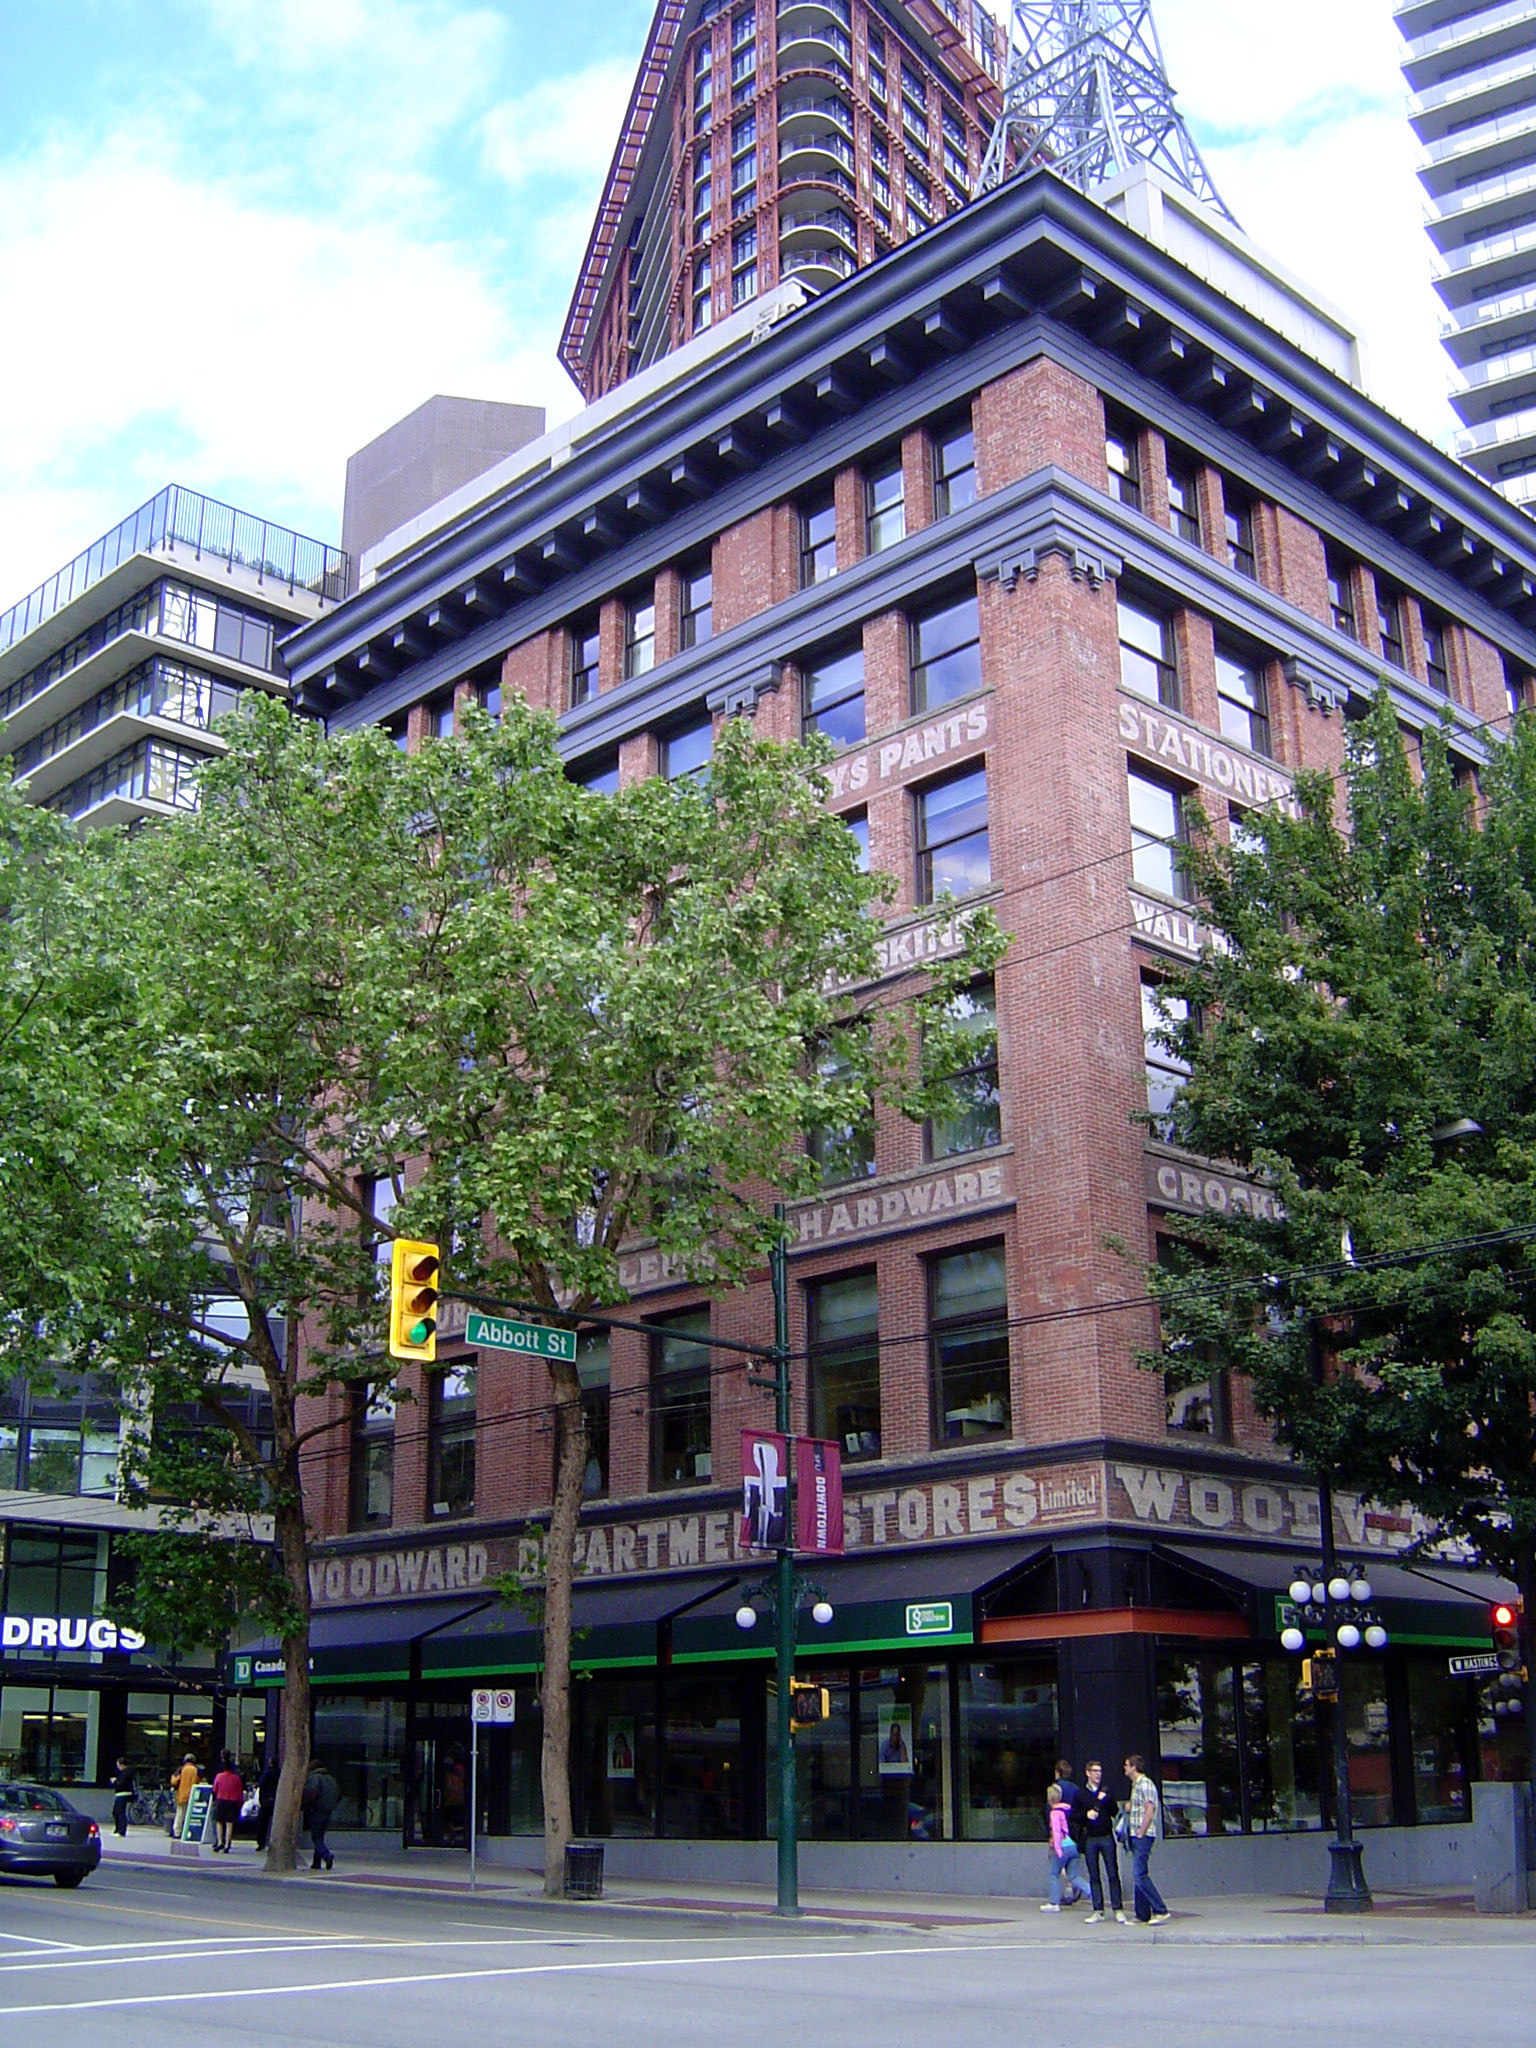 Canada (B.C.): Old Vancouver